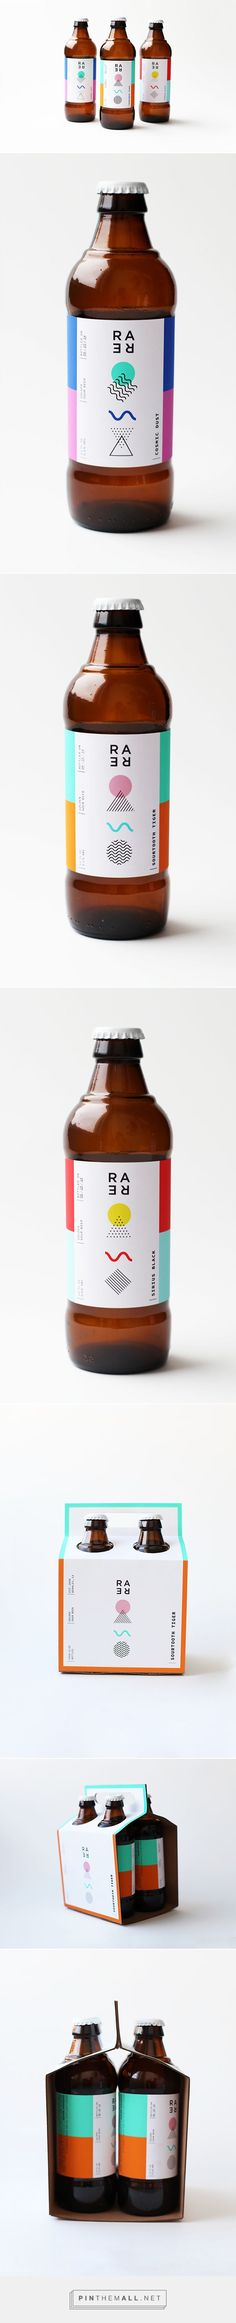 Rare Barrel - A Sour Beer Co. on Behance http://www.pinterest.com/chengyuanchieh/